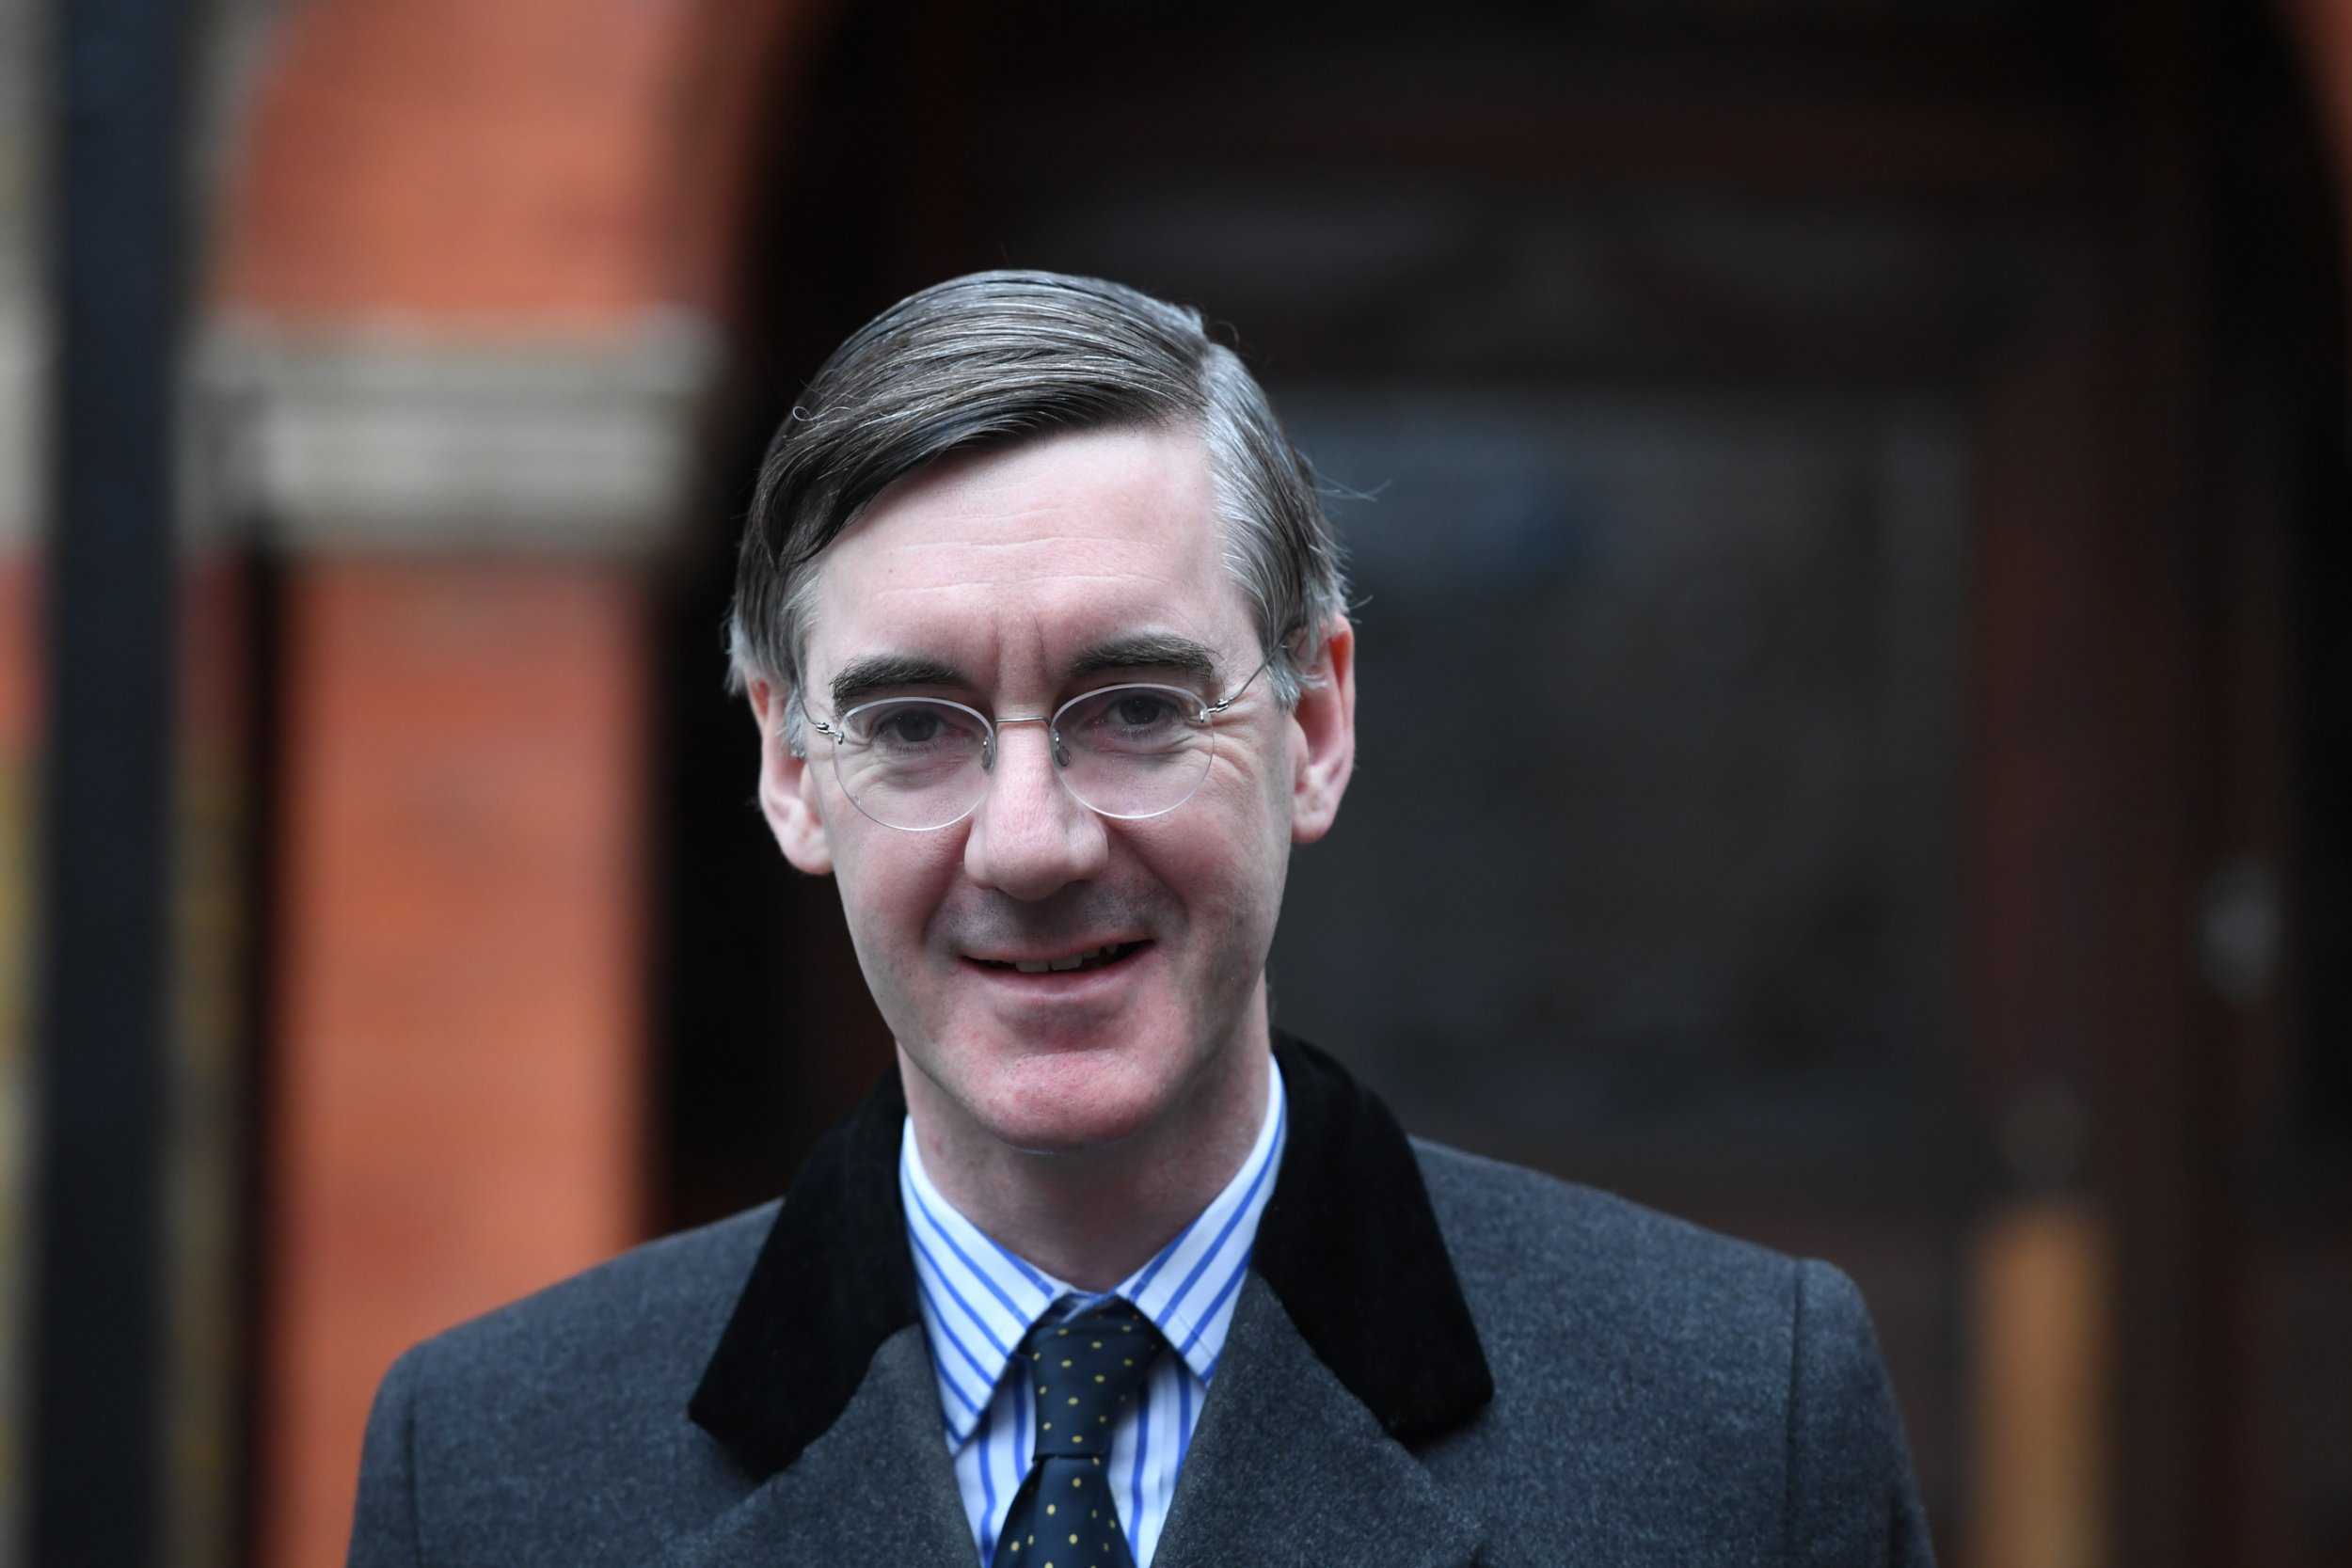 What is ERG and how long has Jacob-Rees Mogg been the chairman?